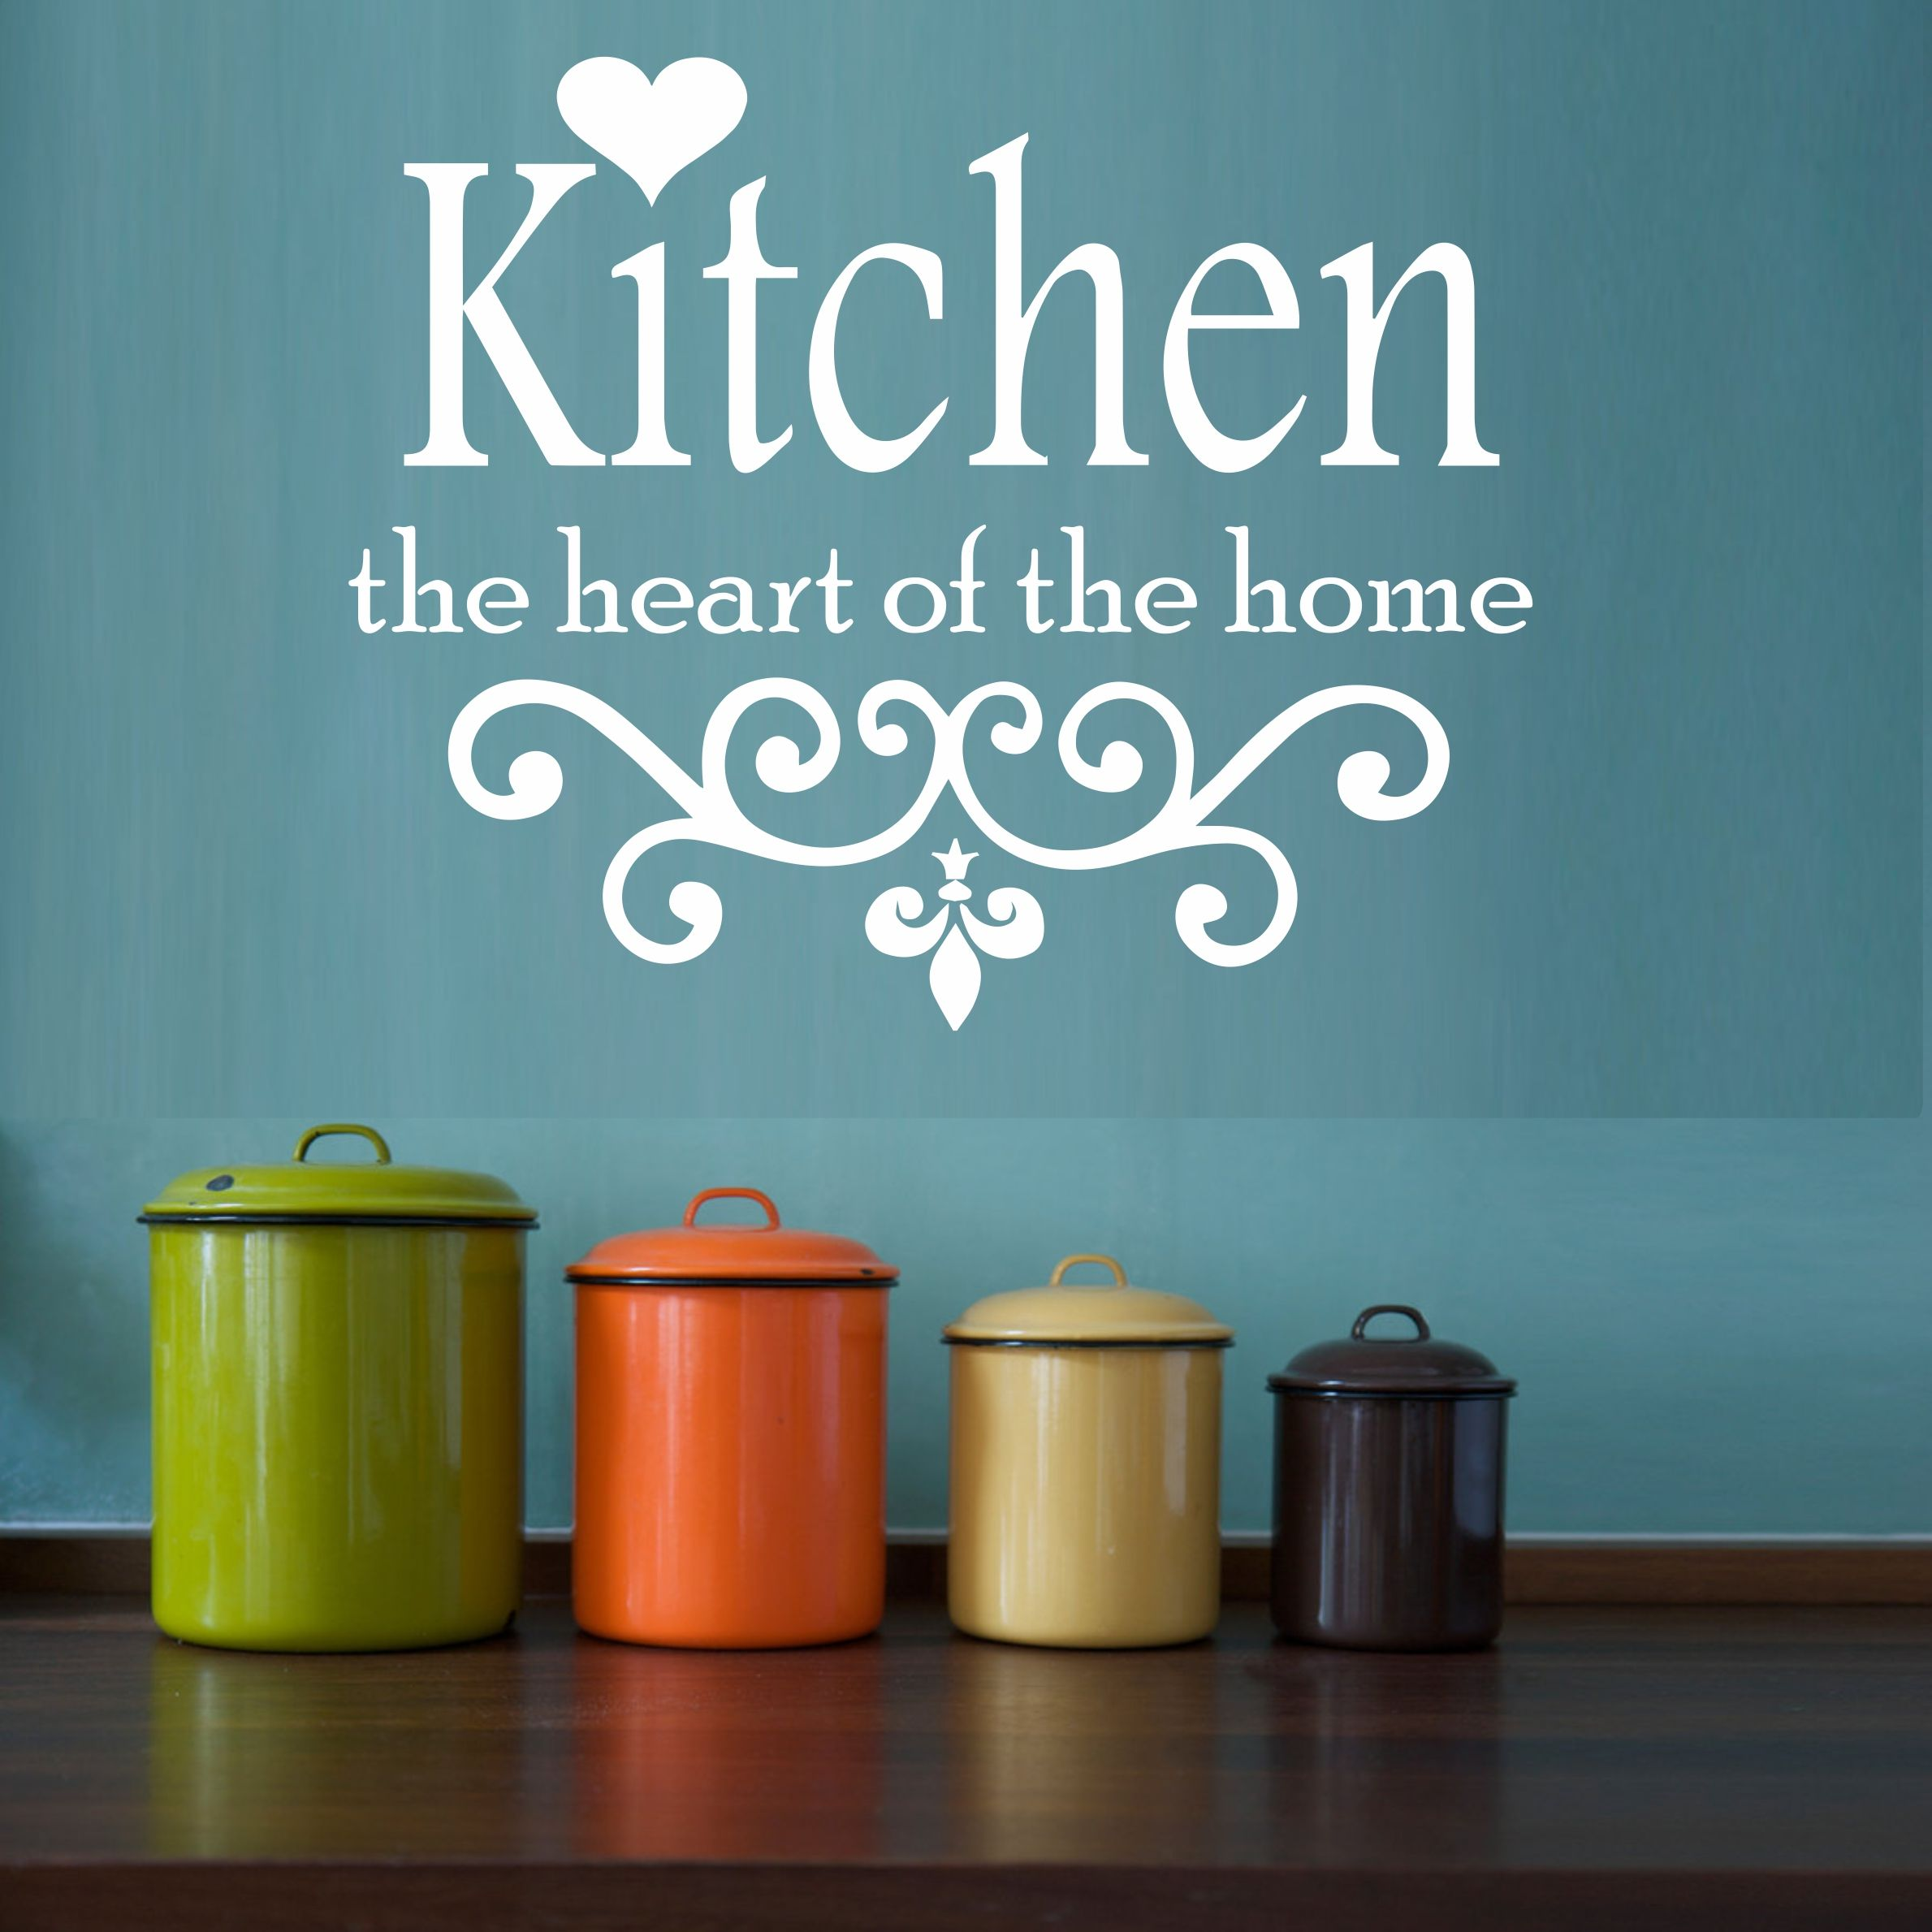 Kitchen Heart Of The Home Stunning Kitchen The Heart Of The Home  Home Design Decorating Inspiration